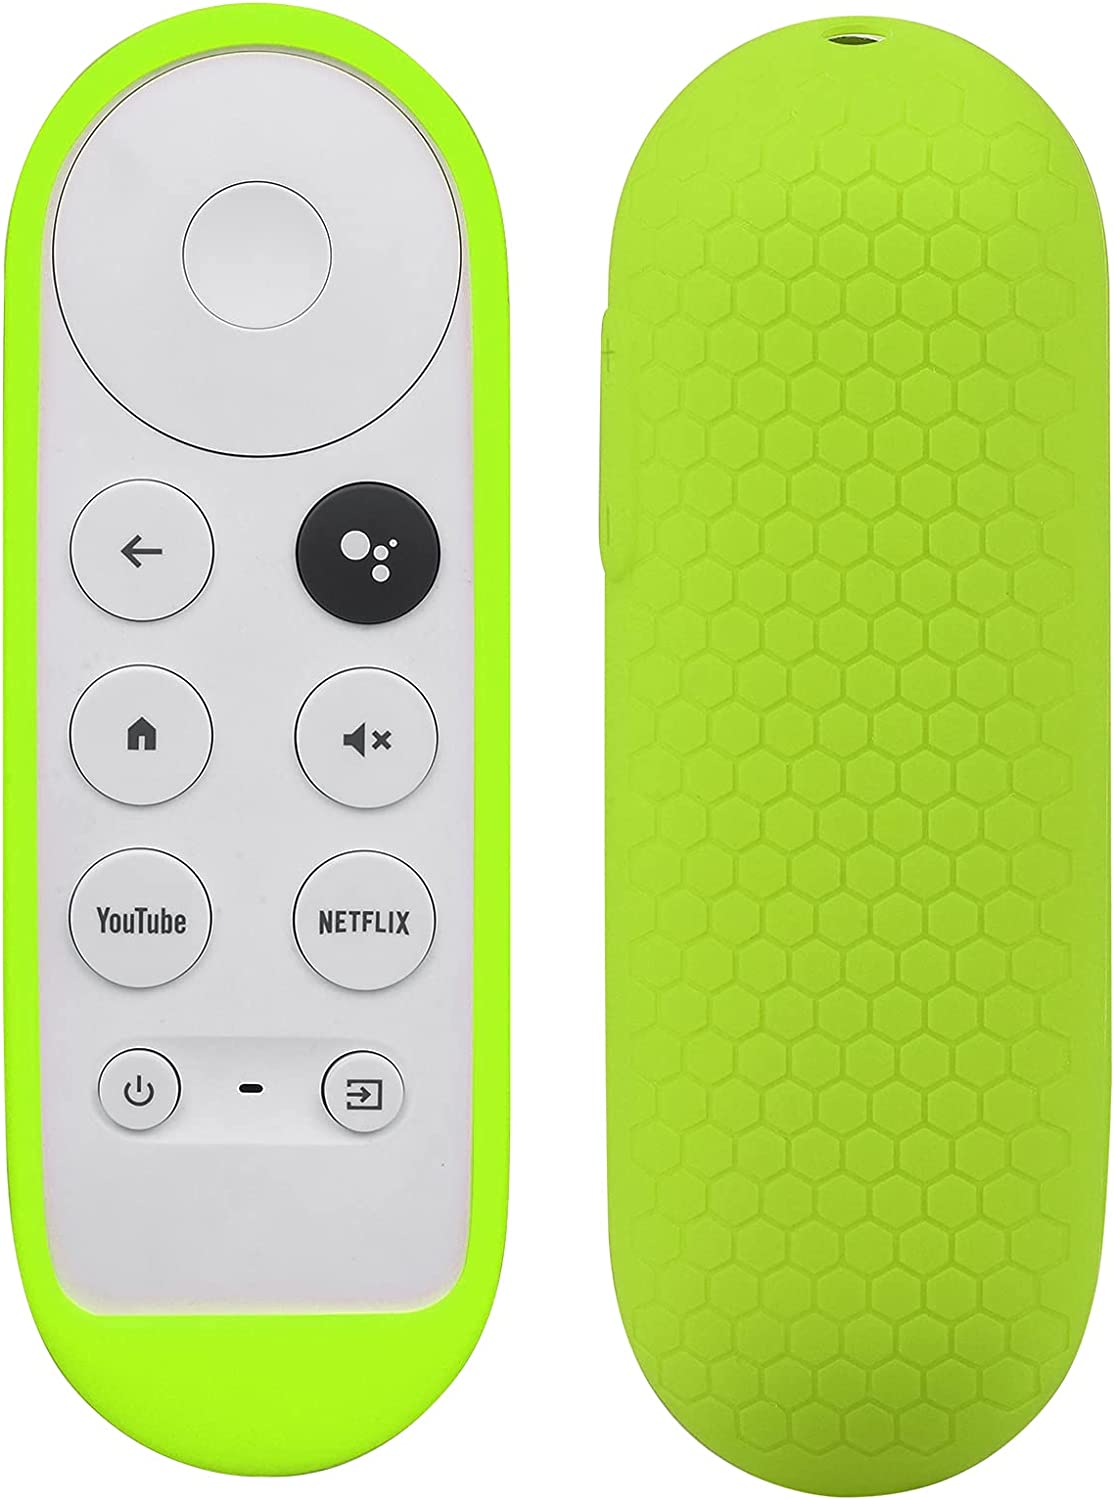 Silicone Case Compatible with Google TV 2020 Voice Remote - SYMOTOP Shockproof Protective Remote Cover Skin Compatible with Chromecast with Google TV 2020 Voice Remote Control - Green